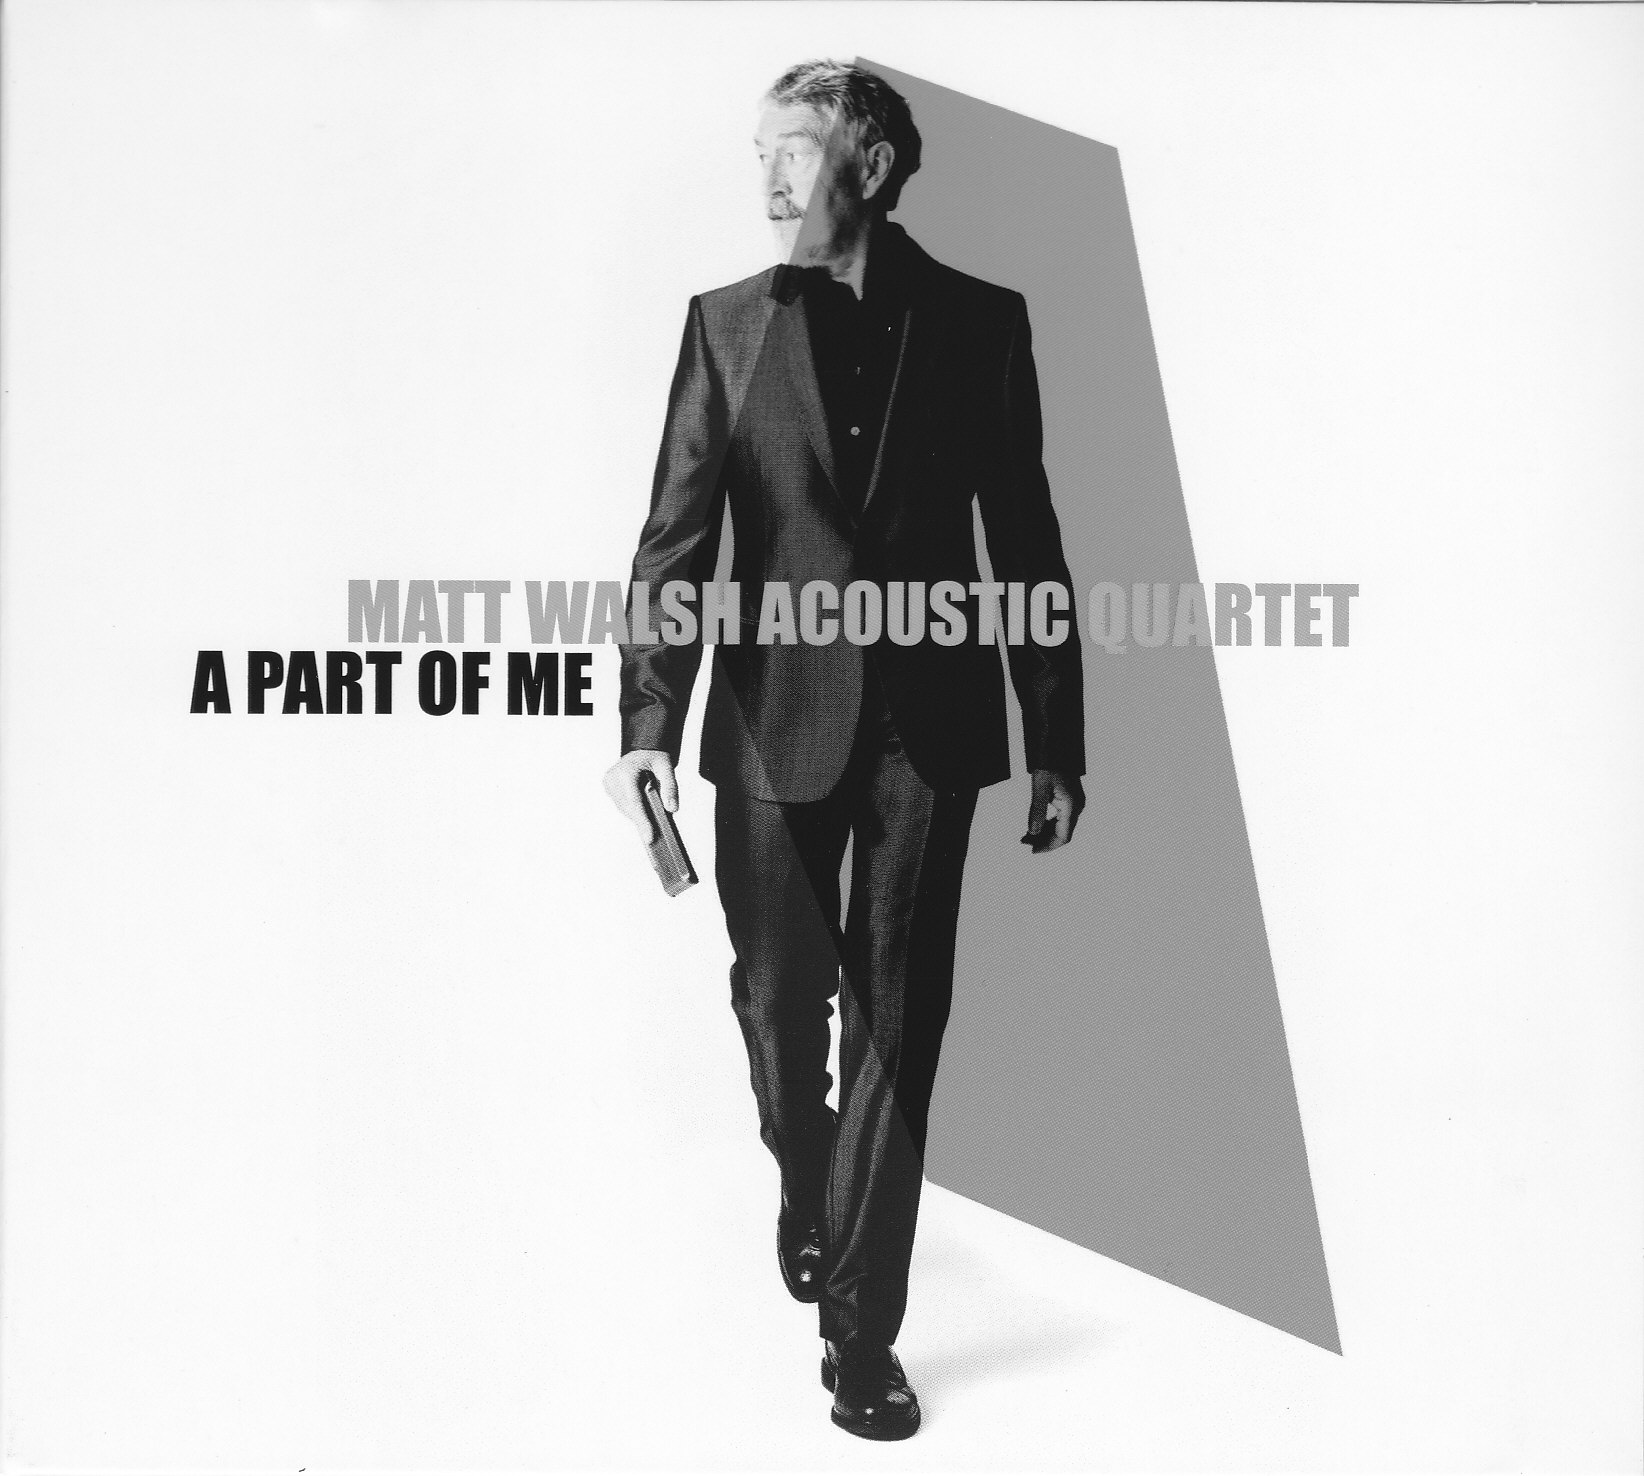 Matt Walsh Acoustic Quartet A Part of Me